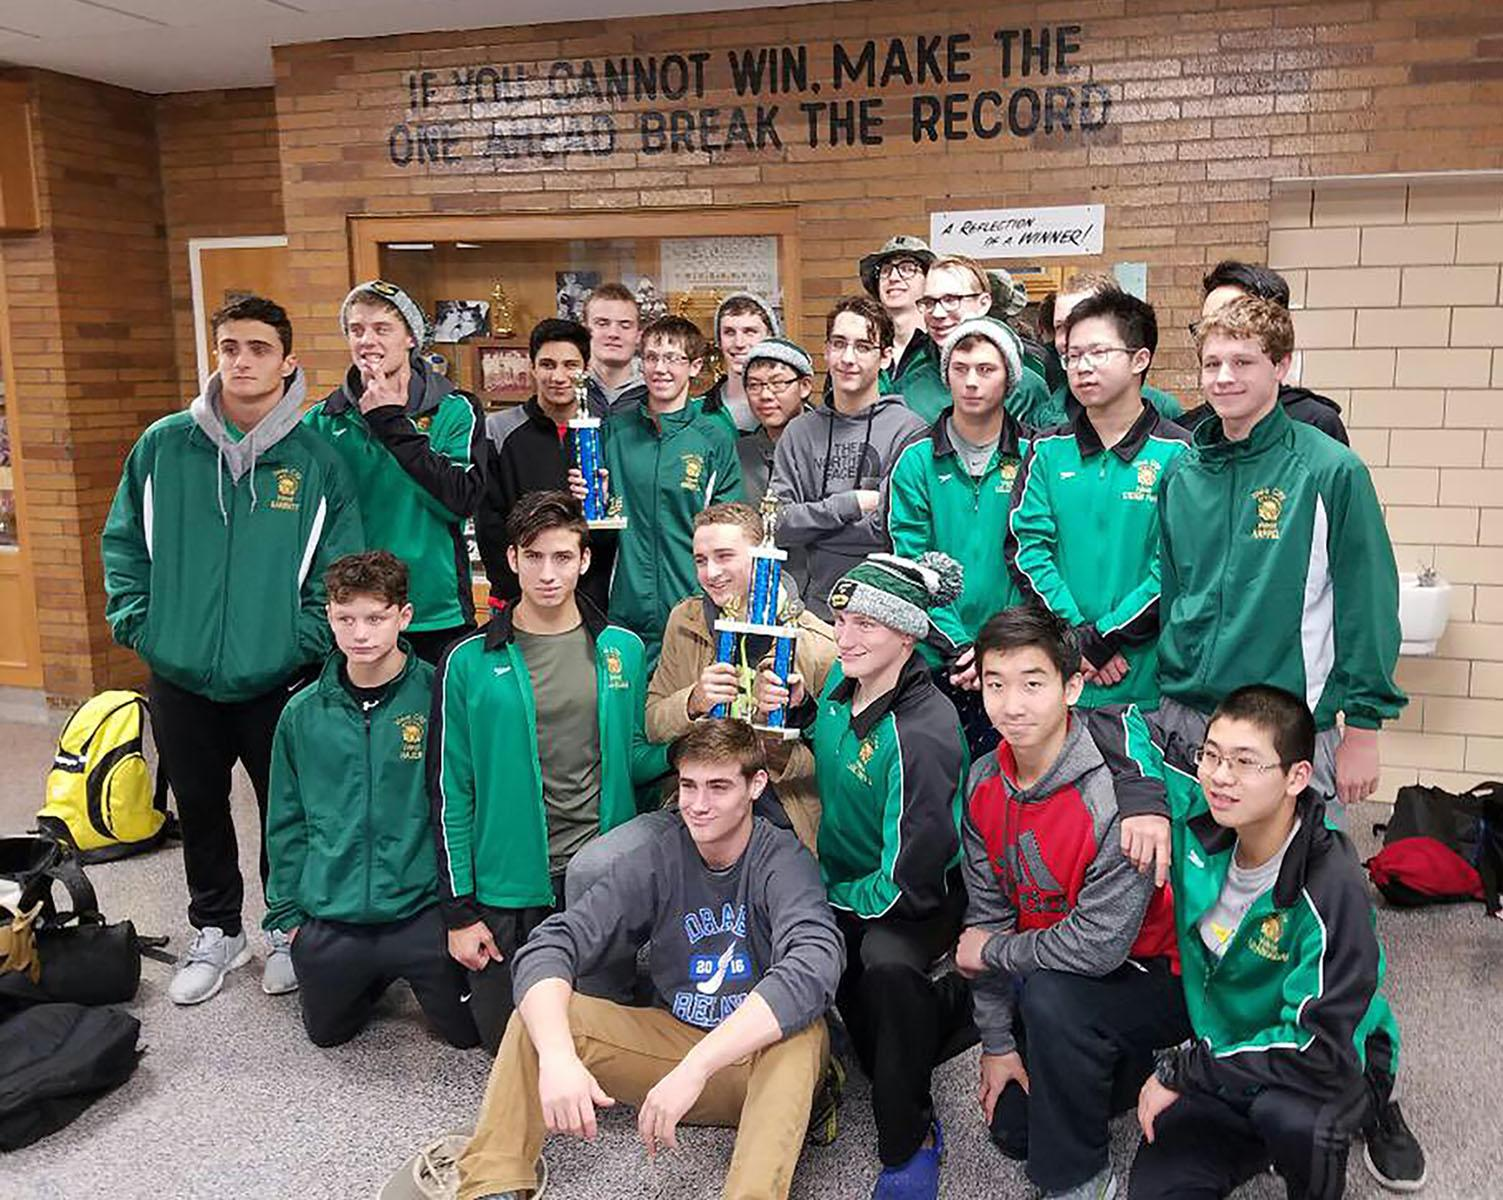 The boys swim team poses with their trophies at Cedar Rapids Jefferson. The Trojans won the J-Hawk relays, placing first in all varsity events.